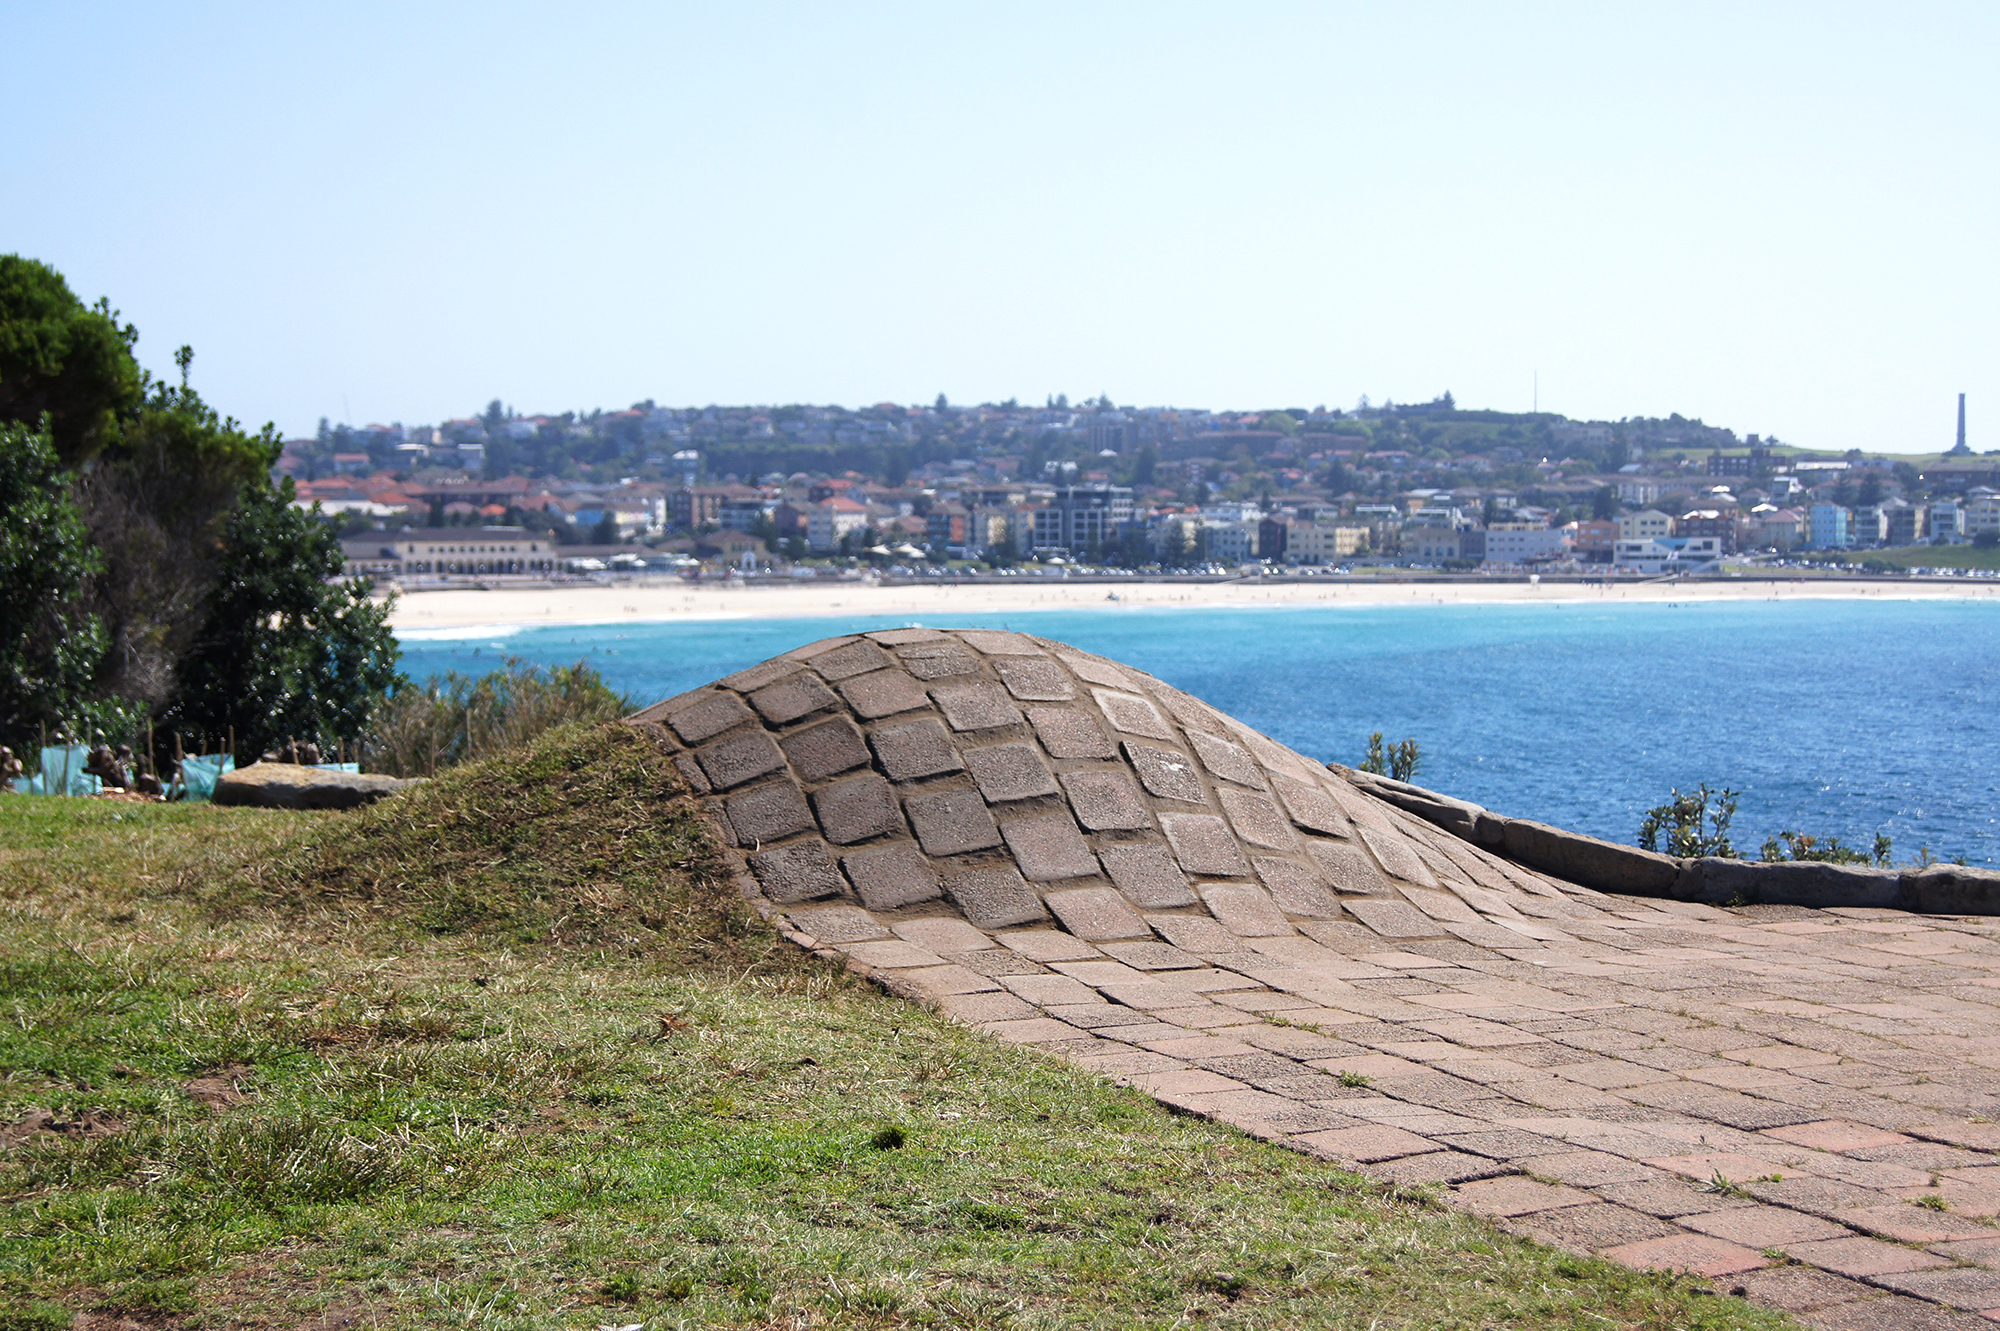 Ground Bondi , 2015 Mixed Media Dimensions Variable   Sculpture by the Sea , 2015, group exhibition, Sydney